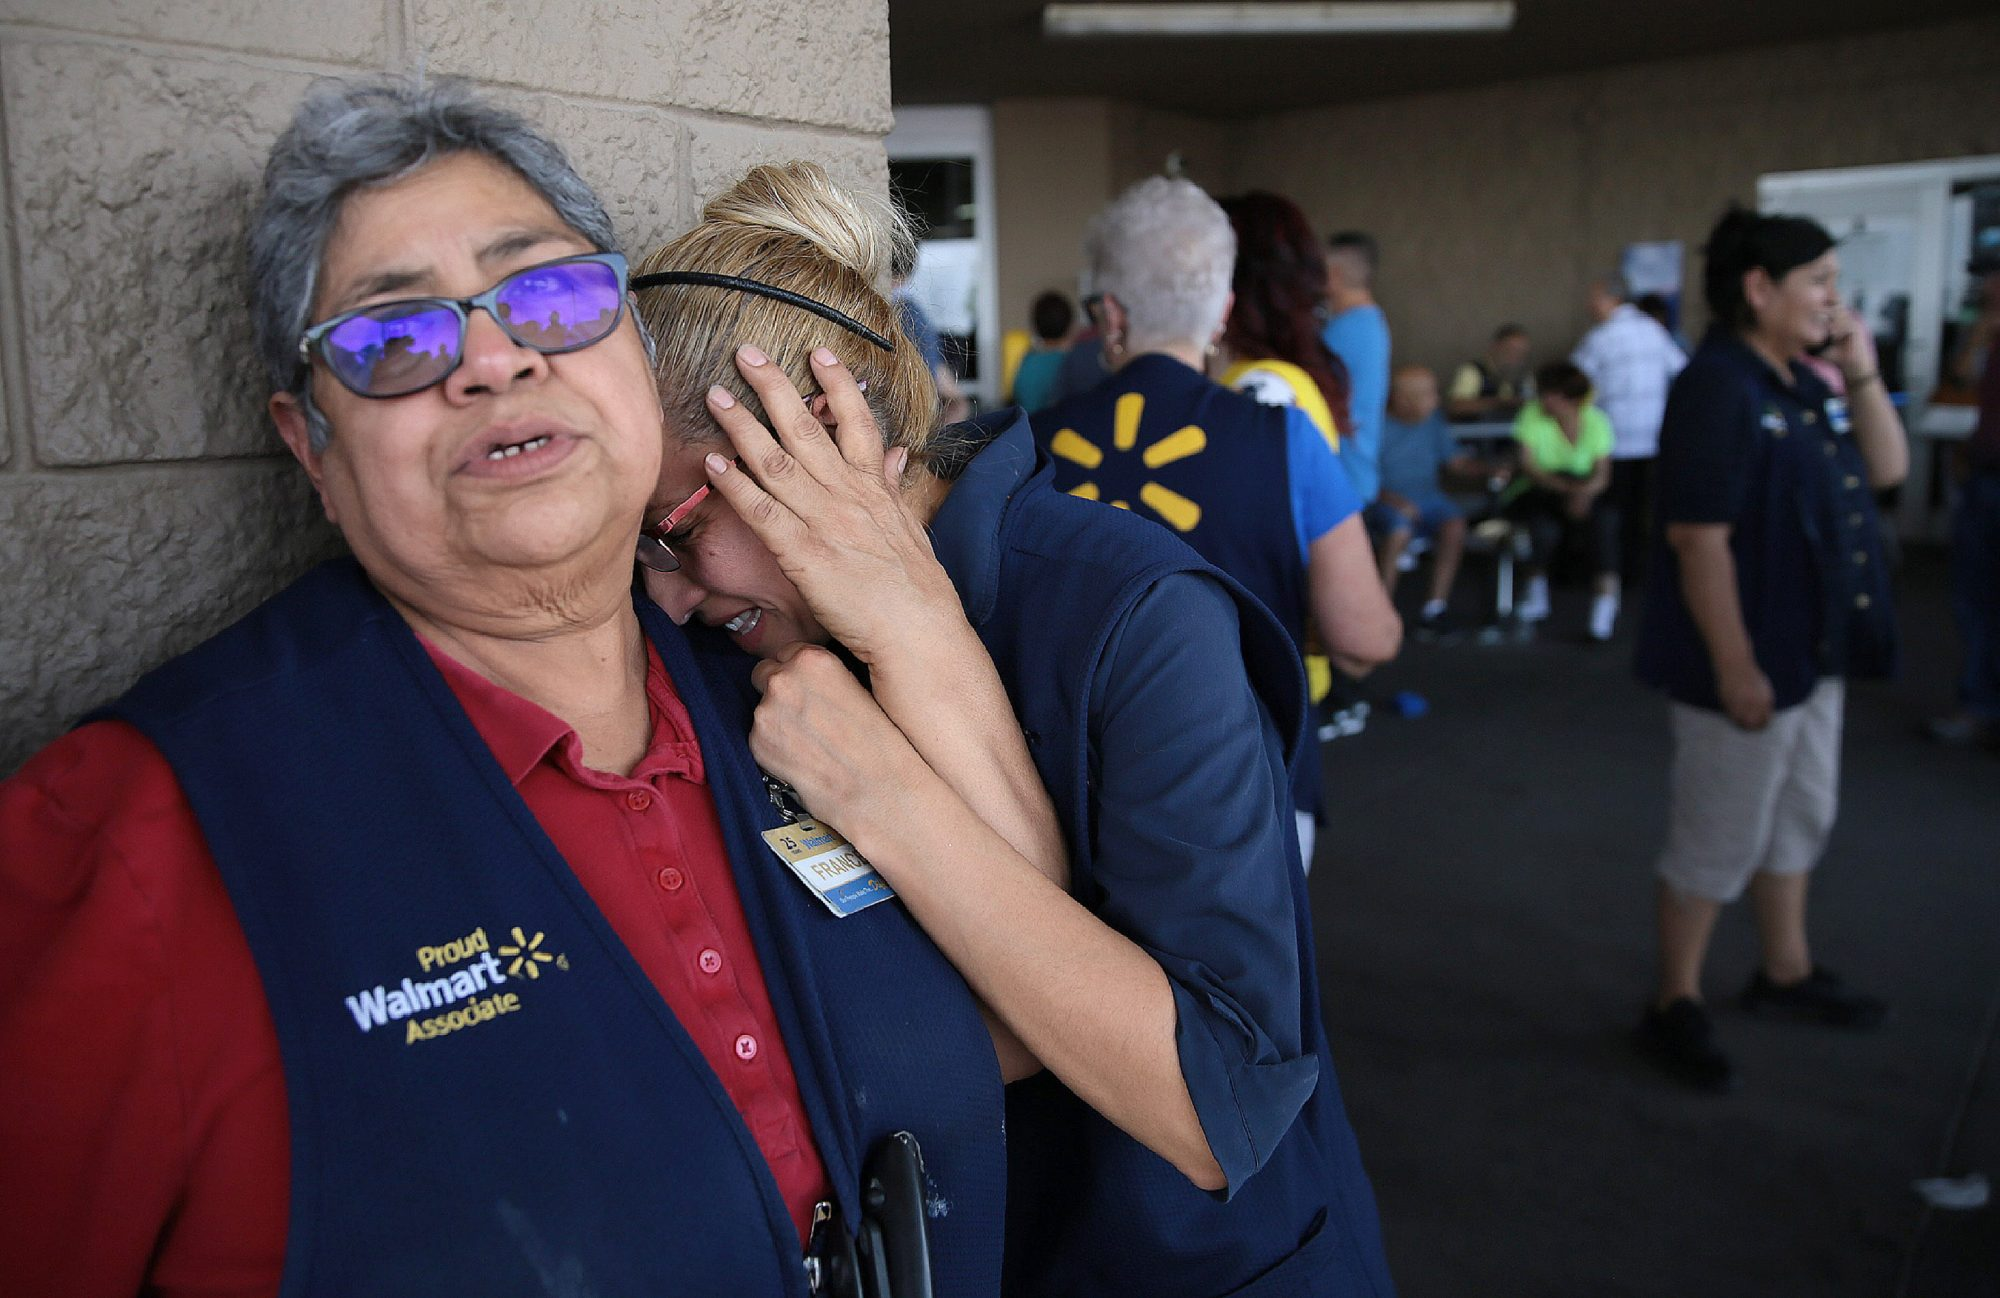 Walmart employees react after a shooter opened fire at the store at Cielo Vista Mall in El Paso, Texas on August 3, 2019